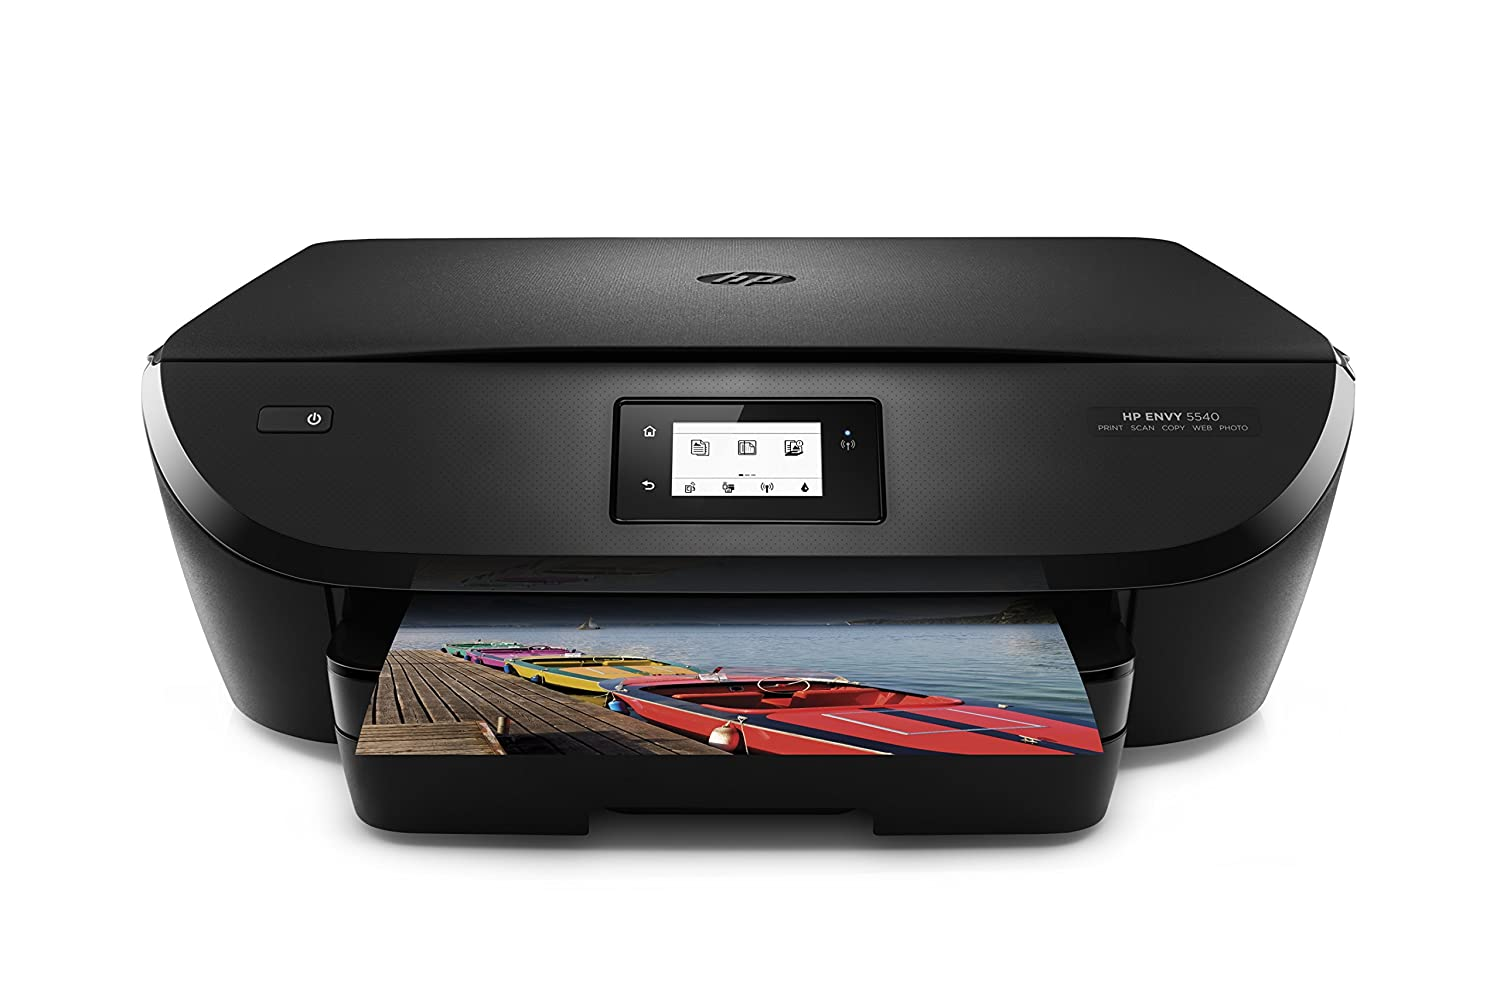 Top 11 Best Printers for College Students Reviews in 2019 9